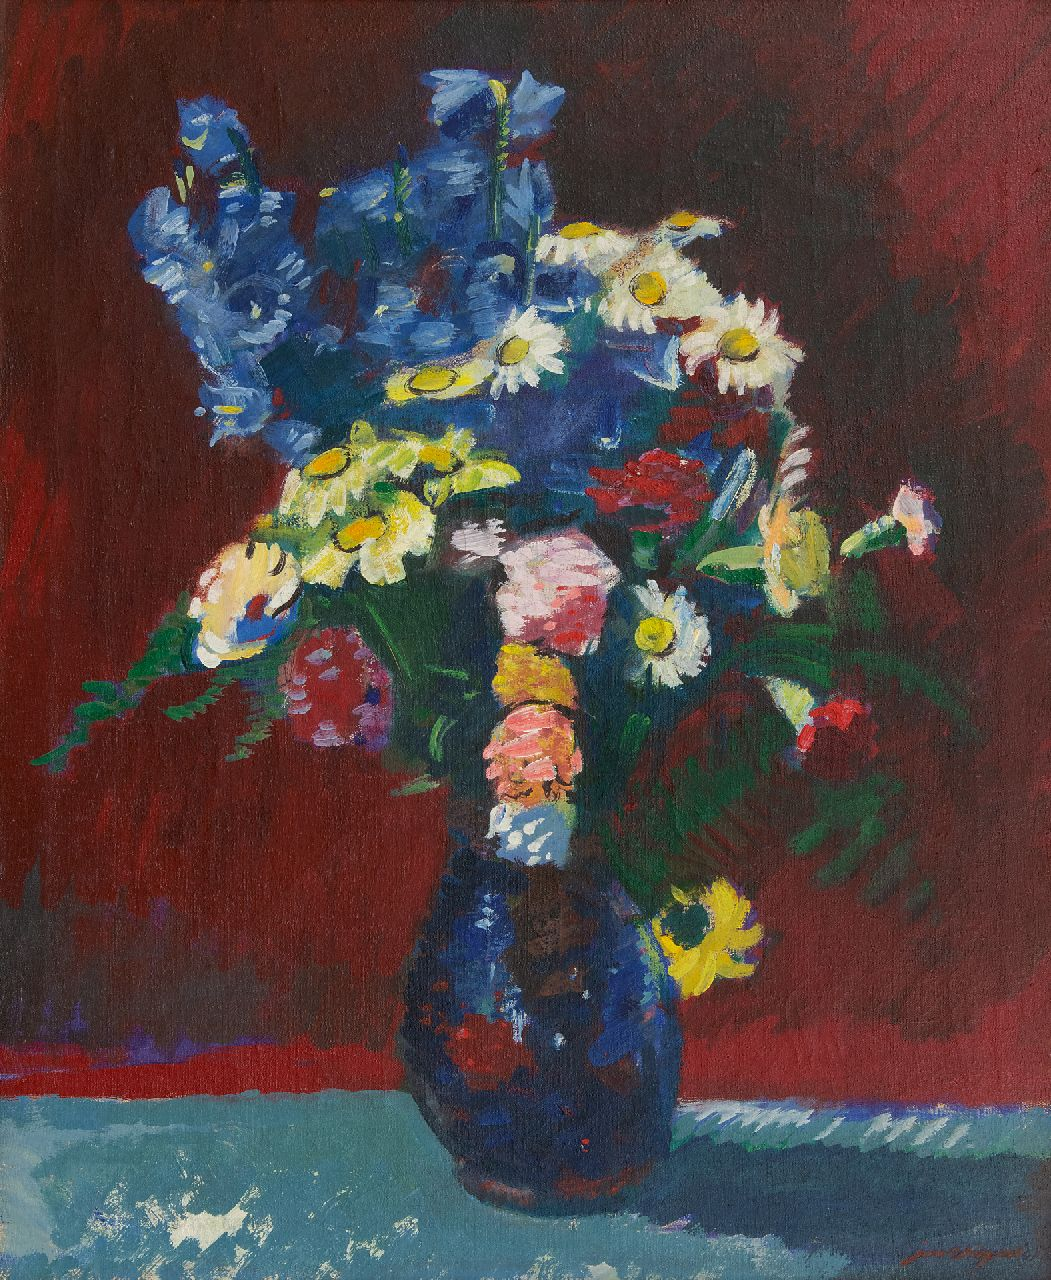 Wiegers J.  | Jan Wiegers | Paintings offered for sale | A summer bouquet, oil on canvas 73.7 x 60.3 cm, signed l.r. and dated '41